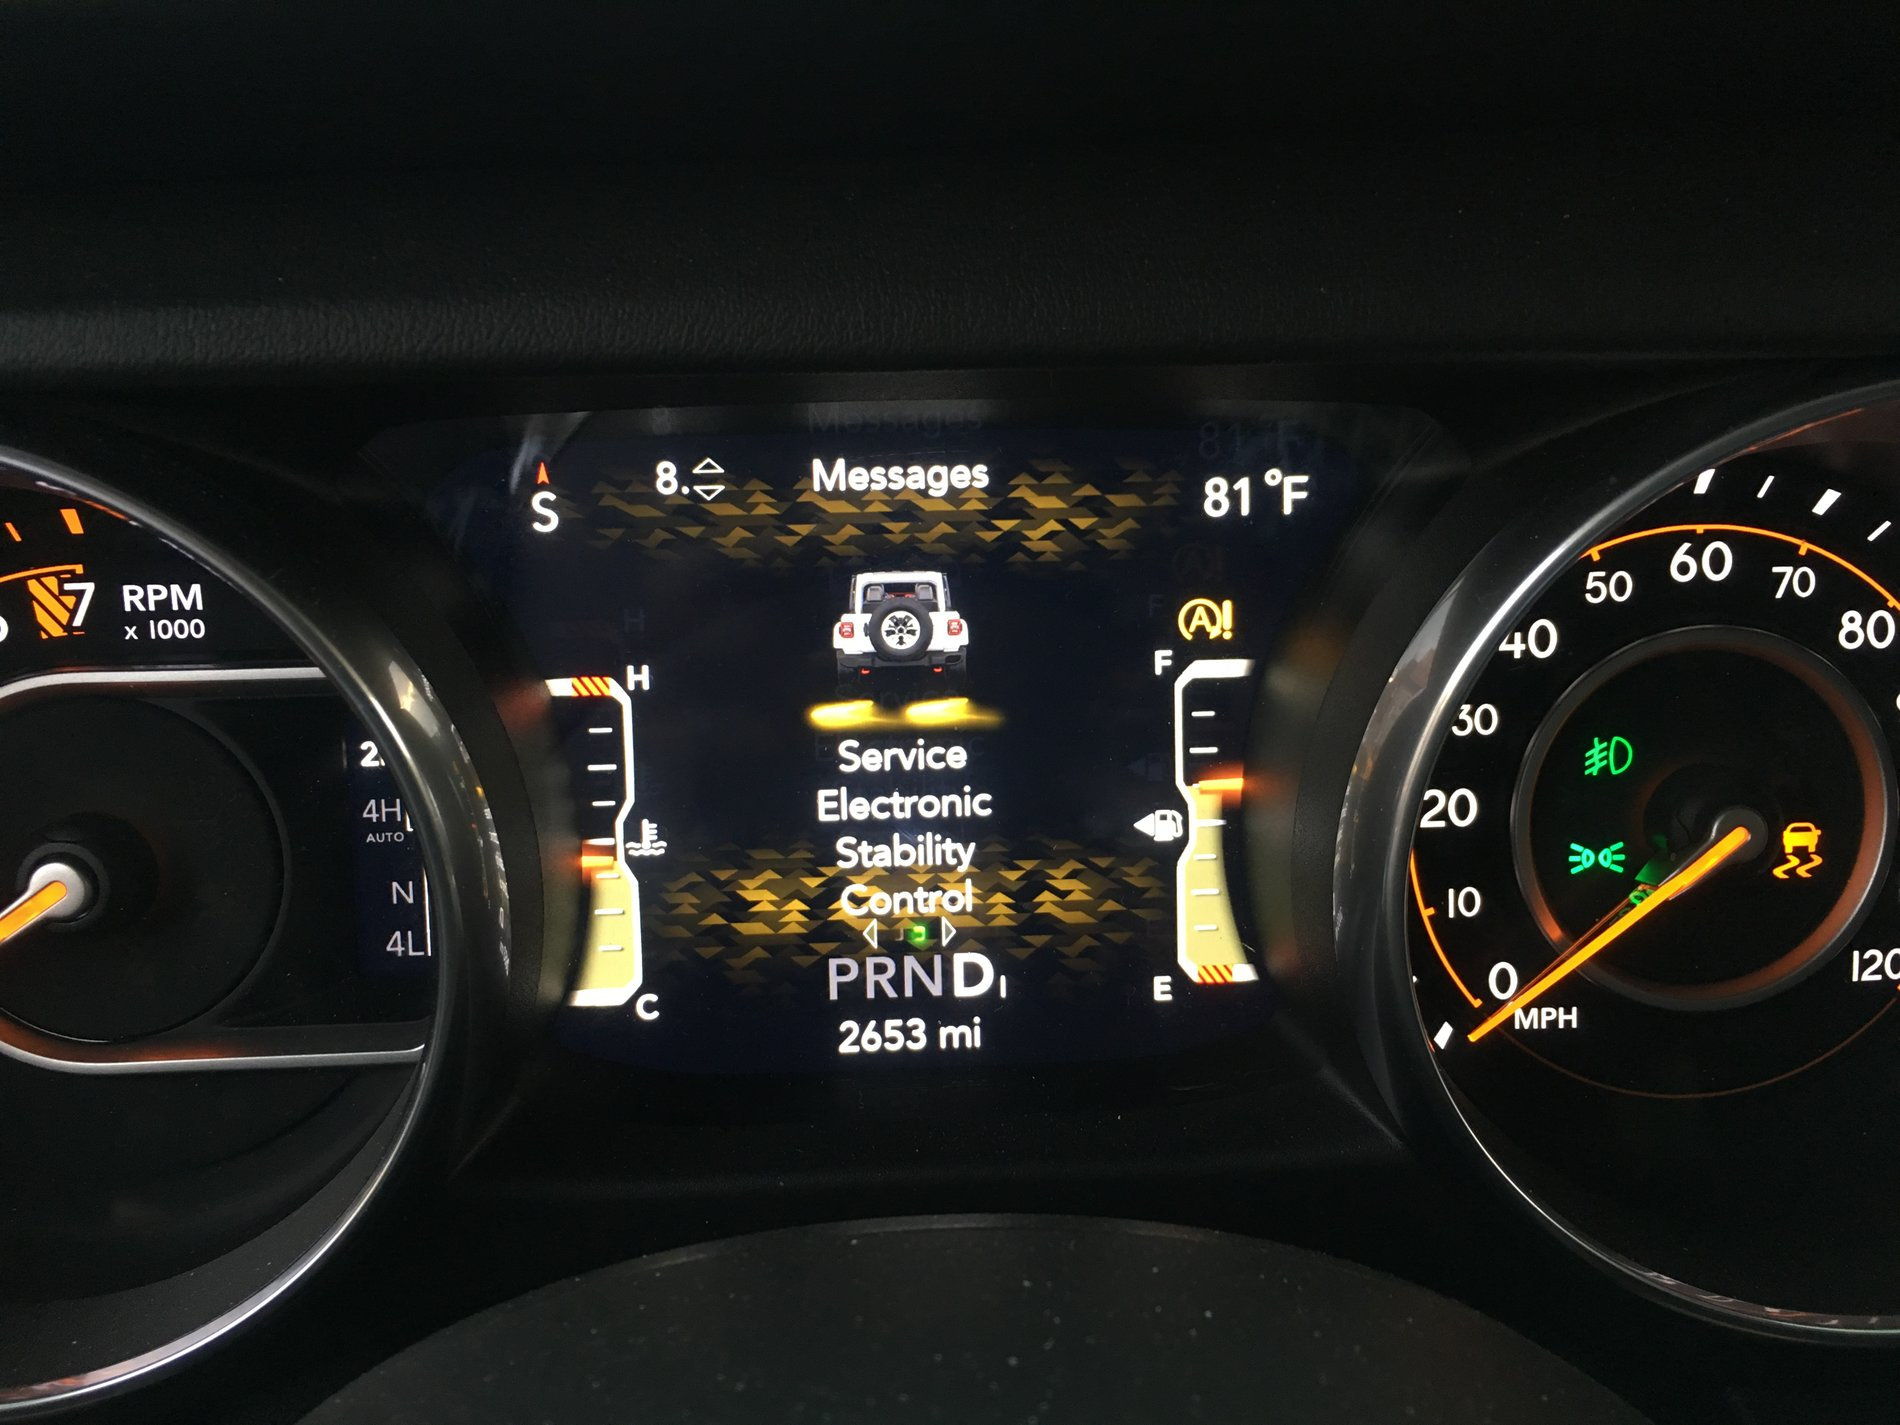 START STOP & ELECTRONIC STABILITY CONTROL SERVICE MESSAGE